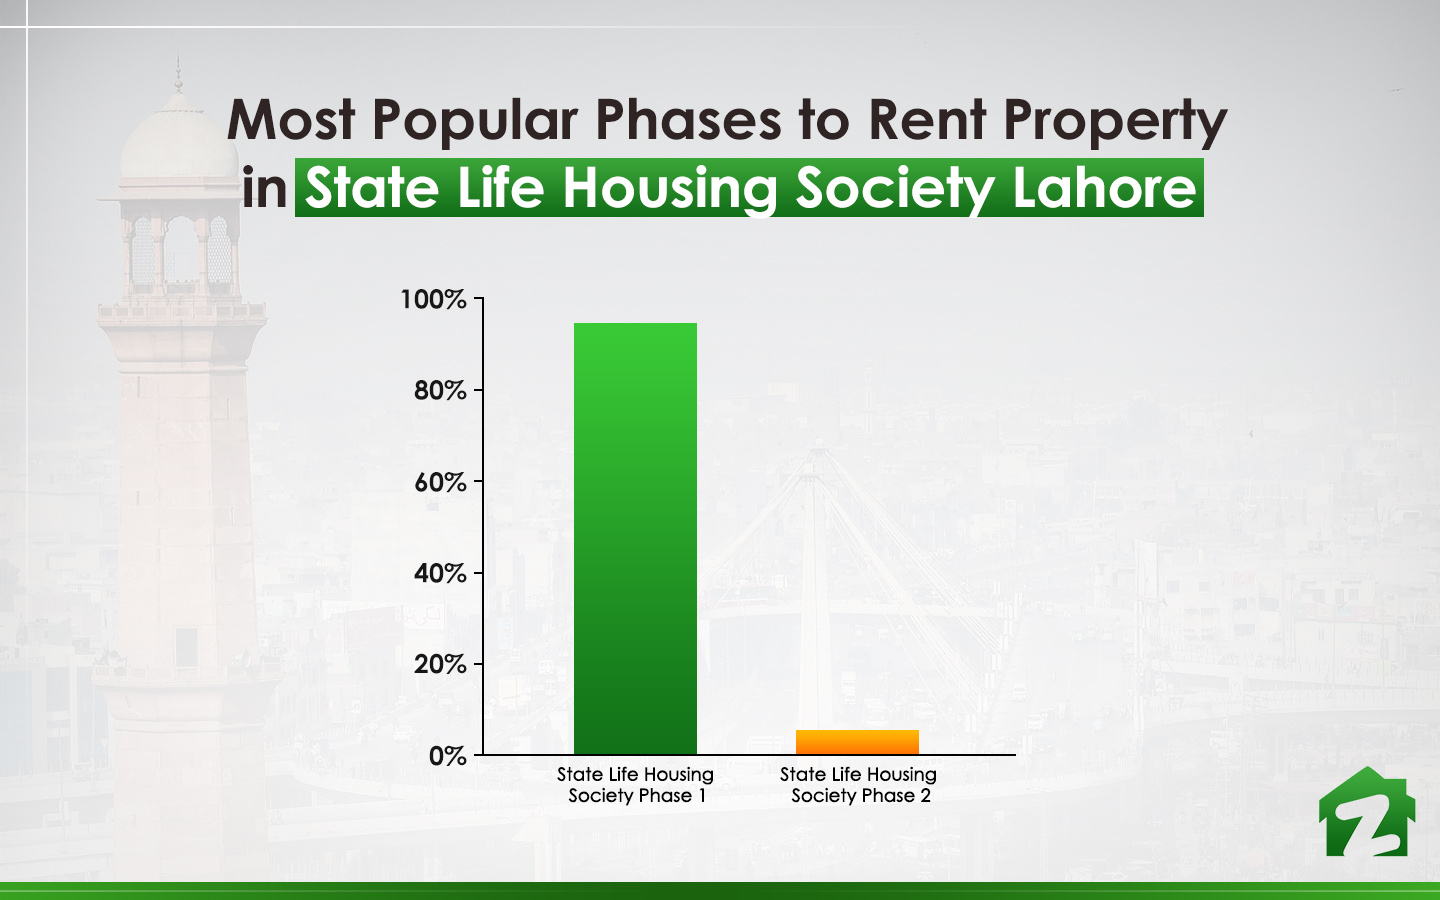 popular phases of State Life Housing Society